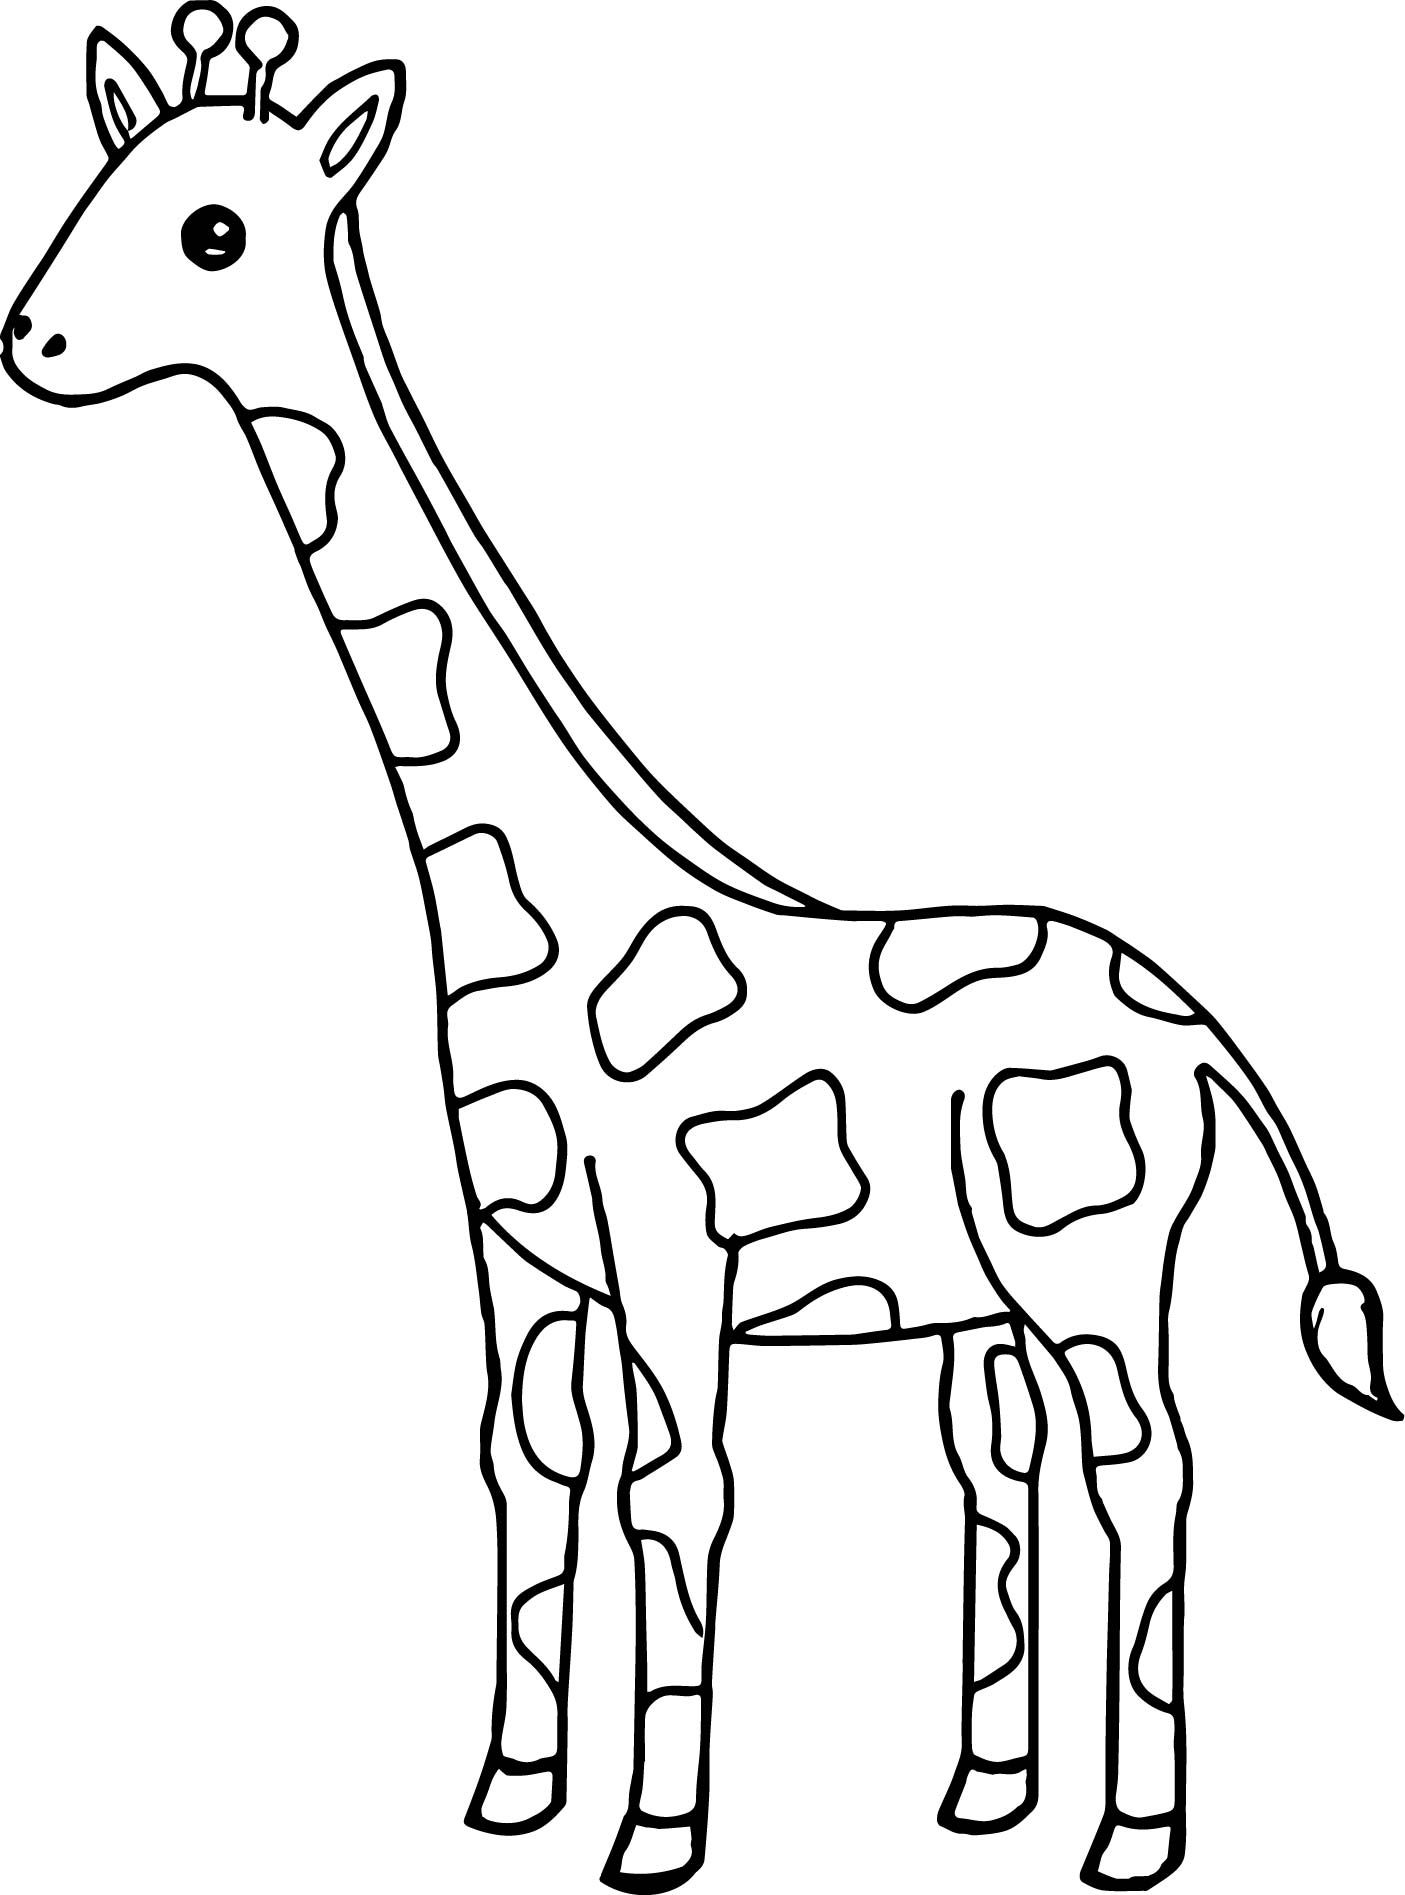 coloring pages giraffe baby giraffe coloring sheets clipart best coloring pages giraffe